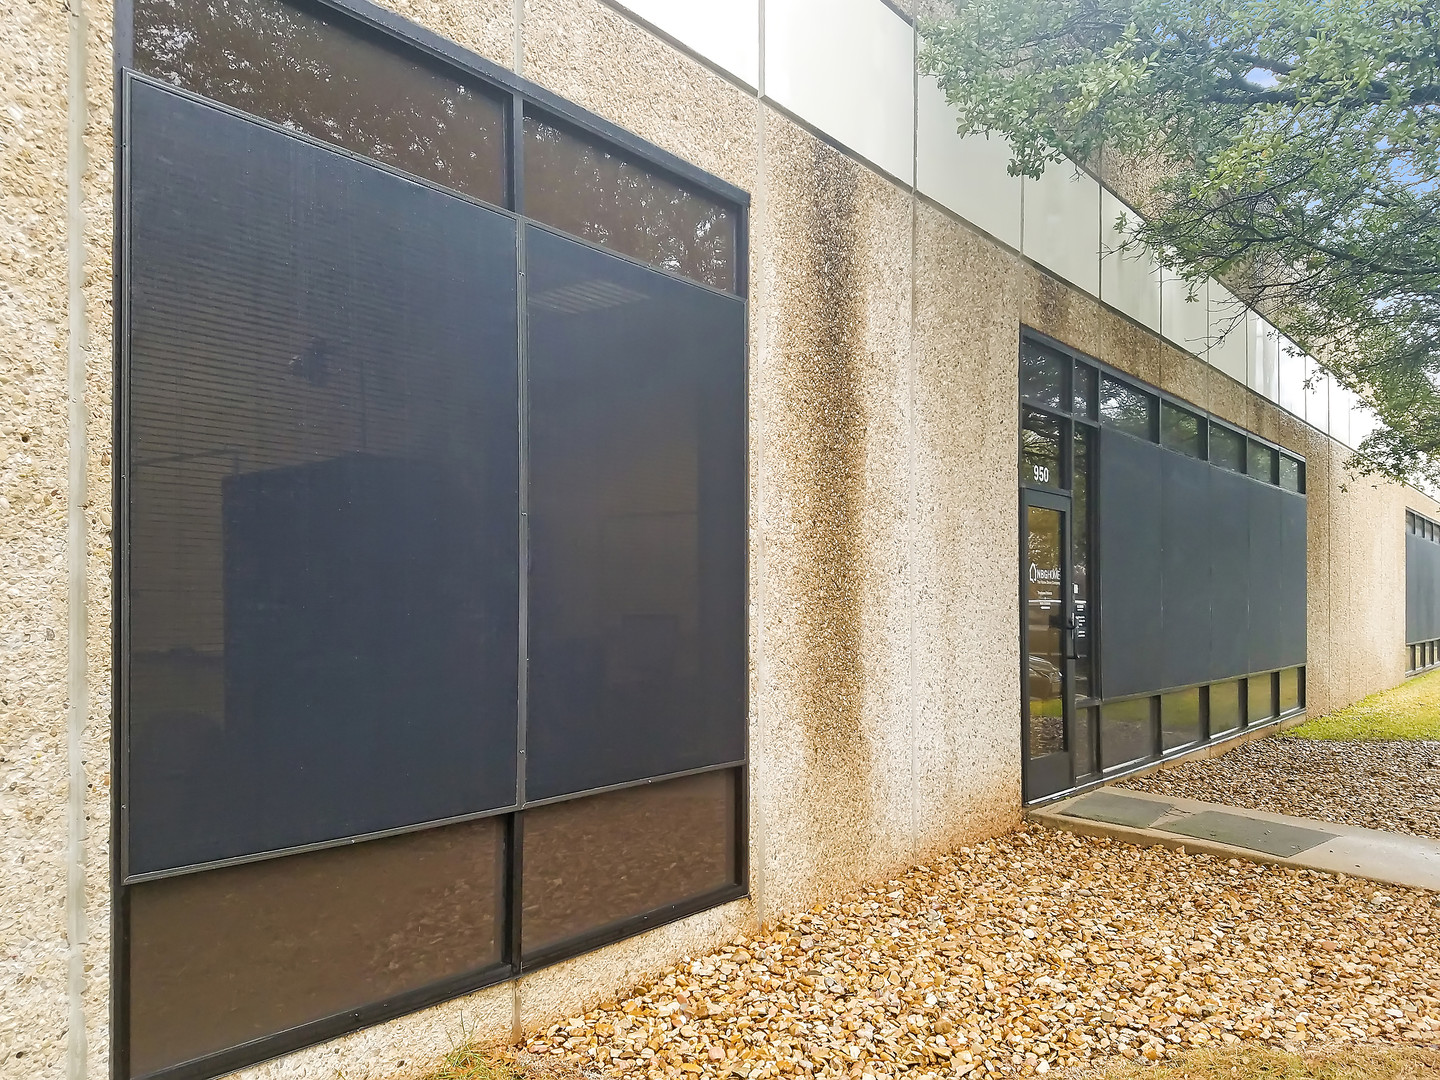 Commercial exterior window shades Austin TX.